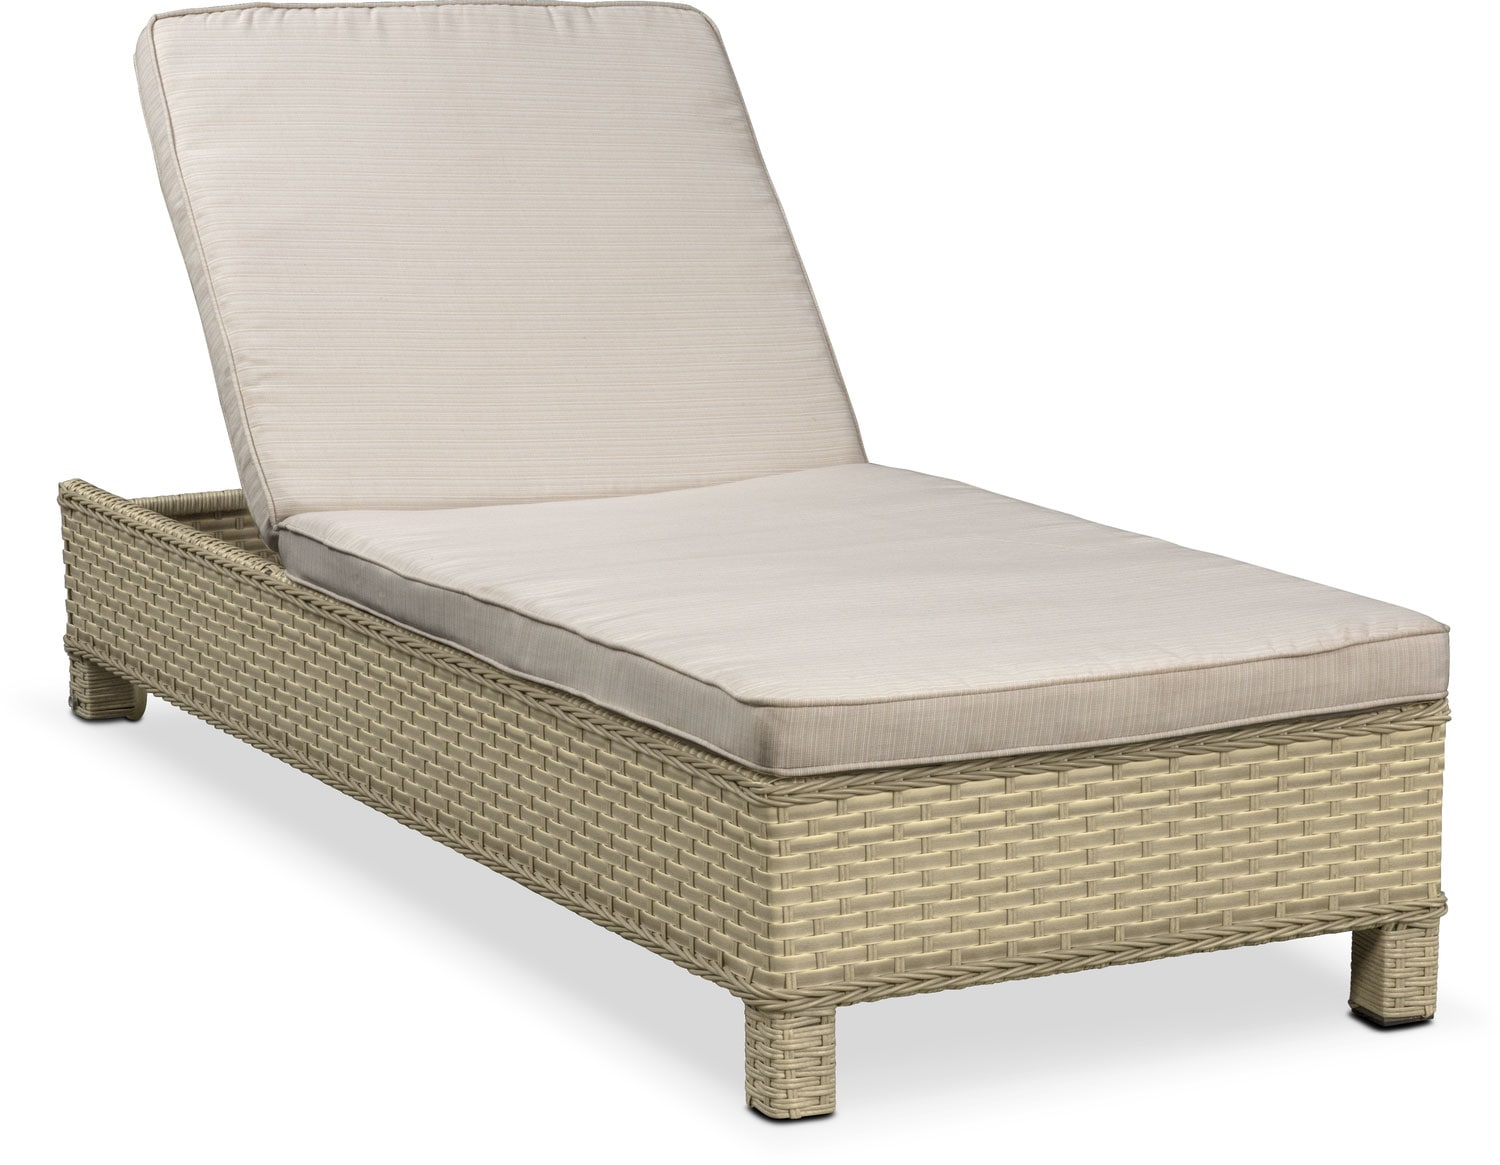 Regatta Outdoor Chaise Lounge - Cream